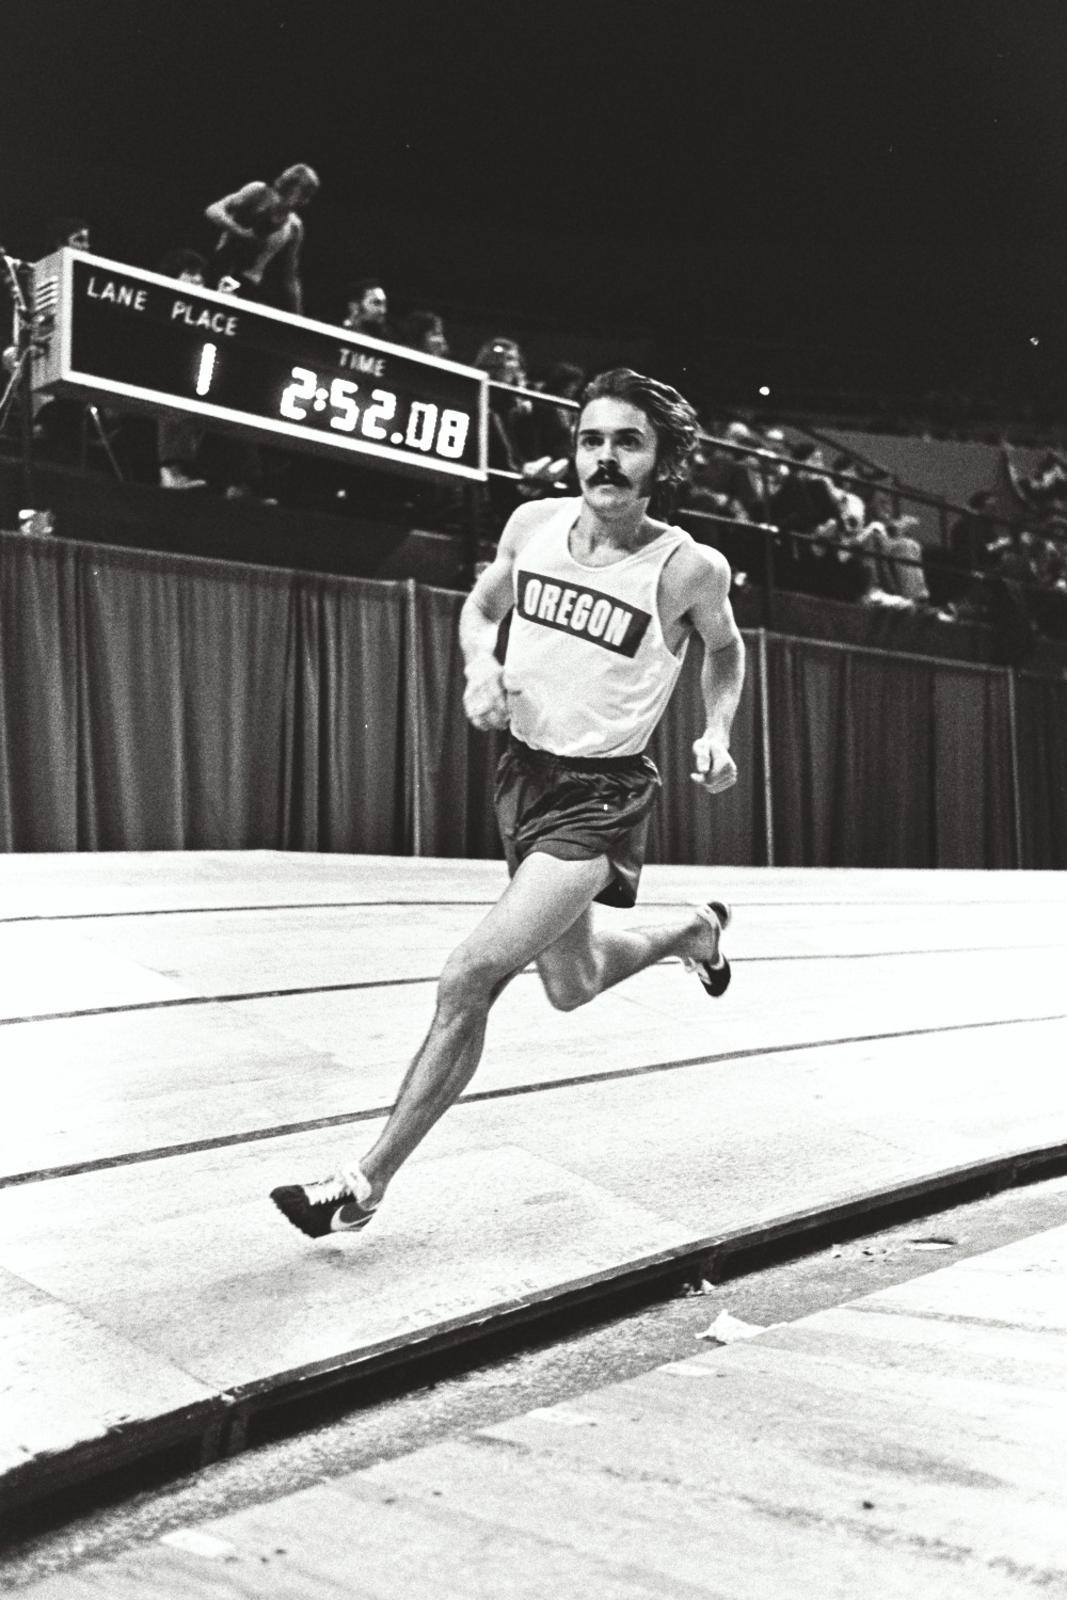 c16d8ef9 40 Years of Prefontaine - Nike News